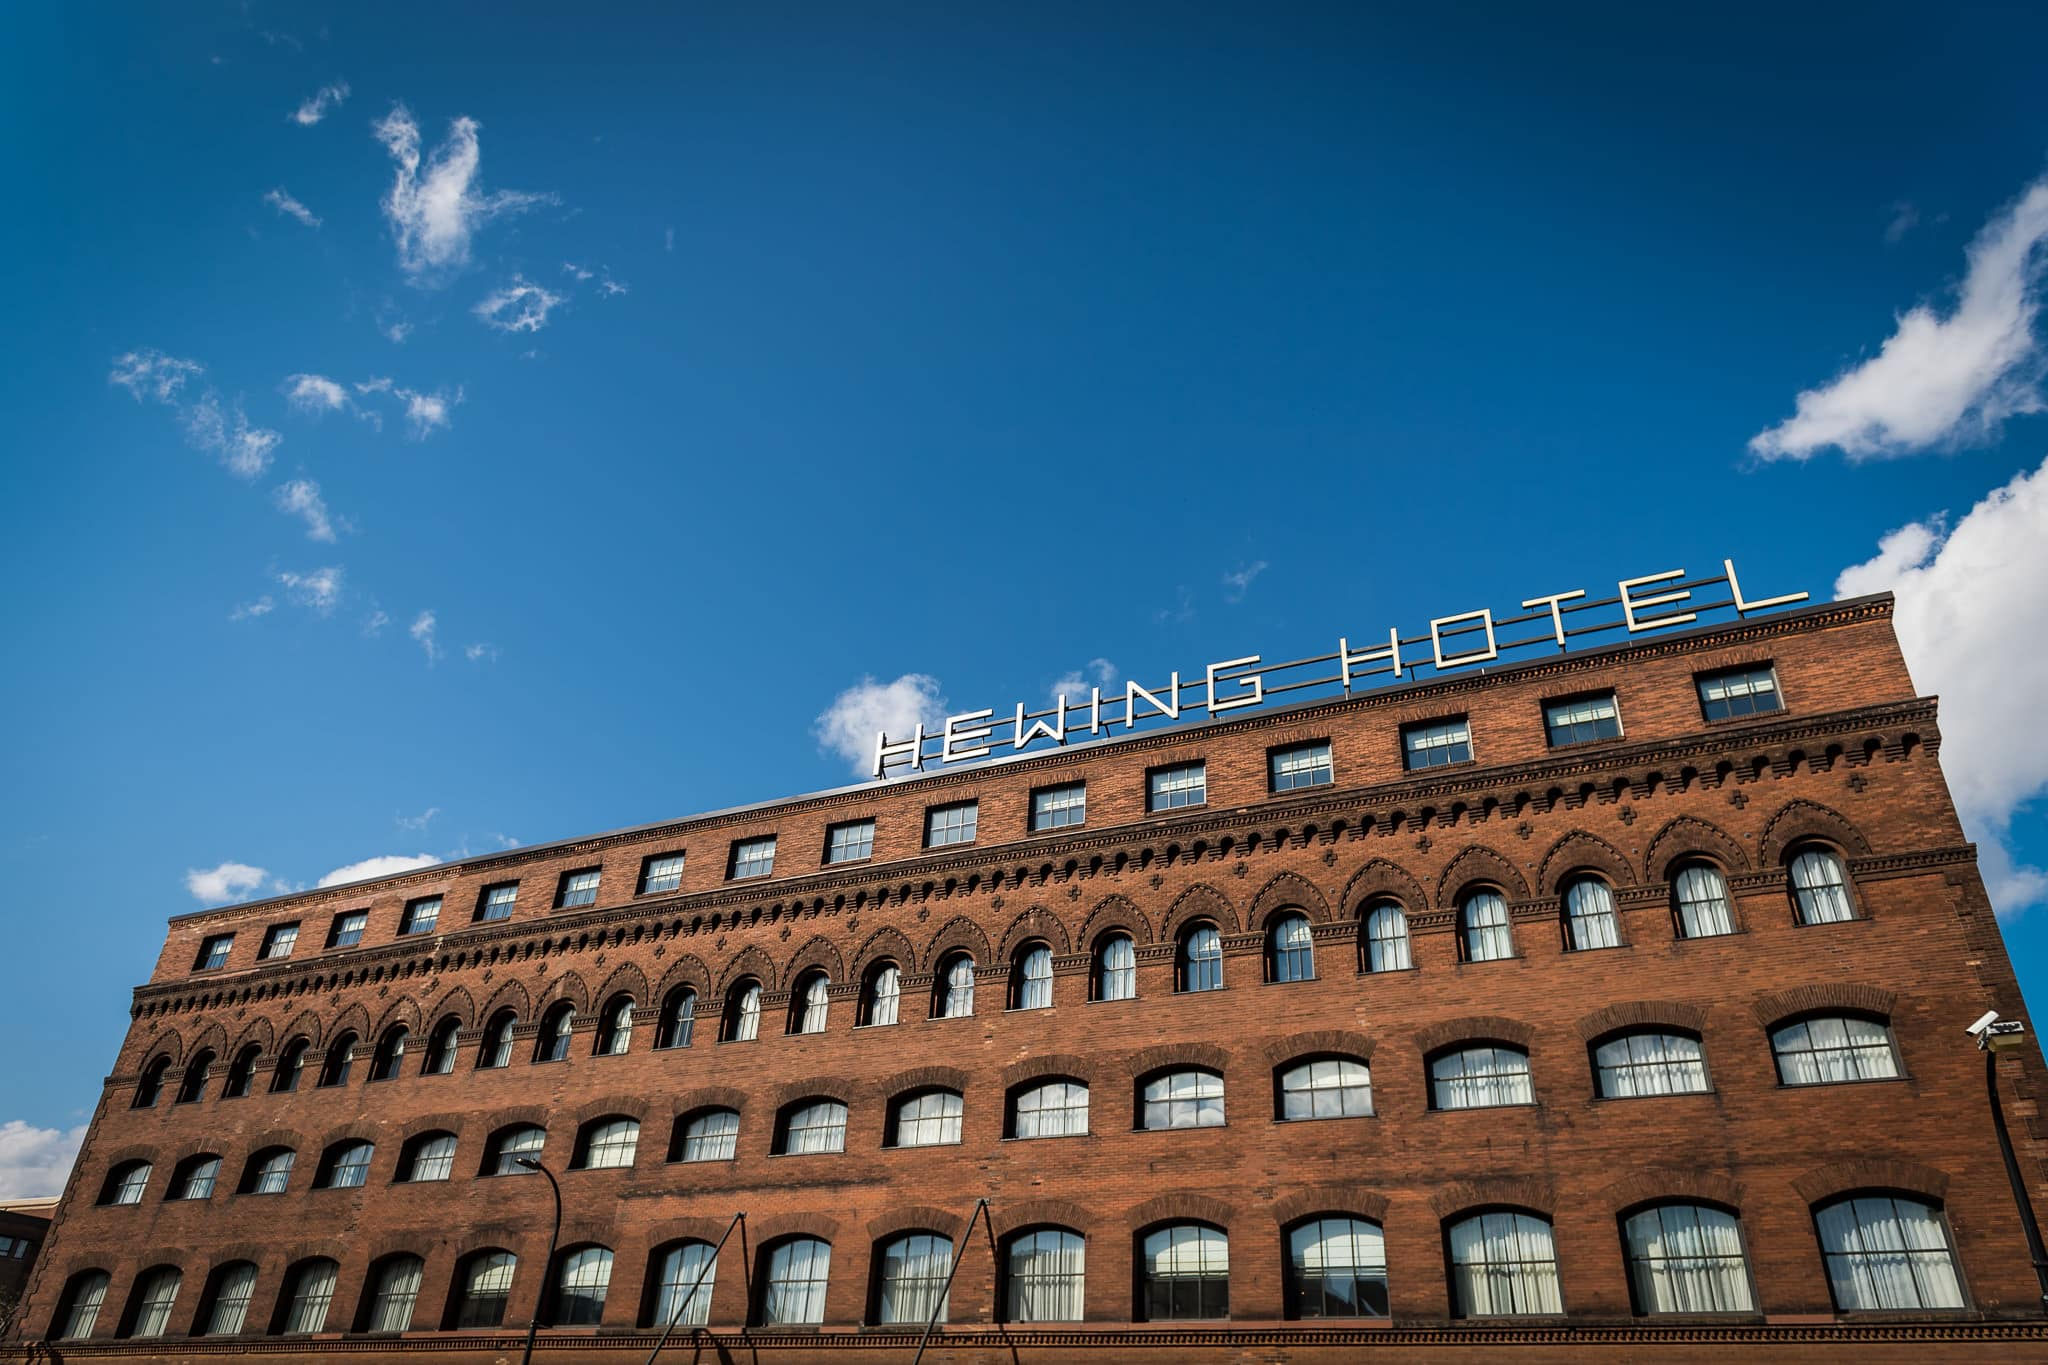 Hewing Hotel building with bright blue sky and some puffy white clouds